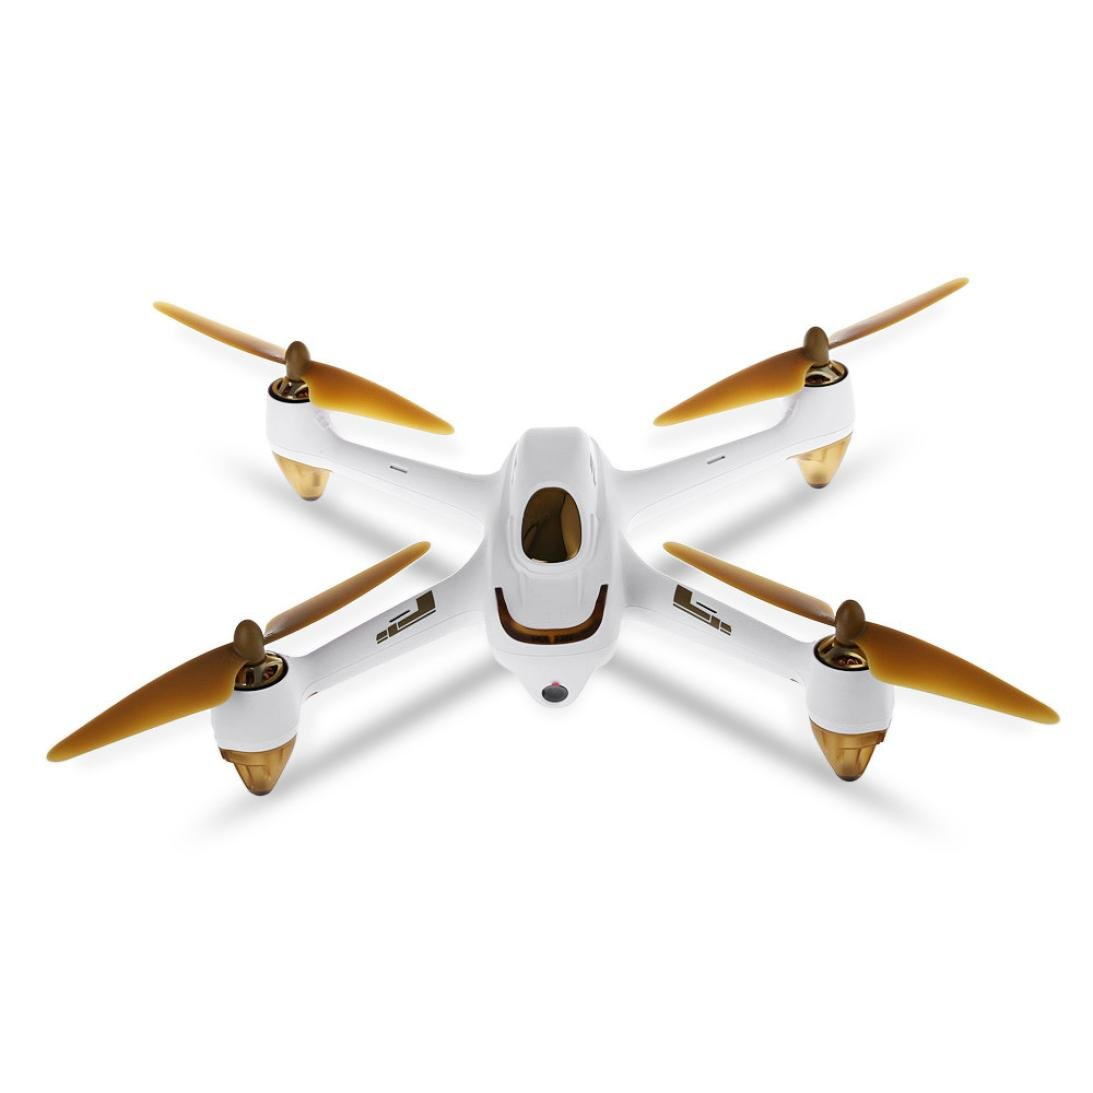 Dreamyth Hubsan H501S X4 5.8G FPV Brushless With 1080P HD Camera GPS RC Quadcopter RTF Practical (White)